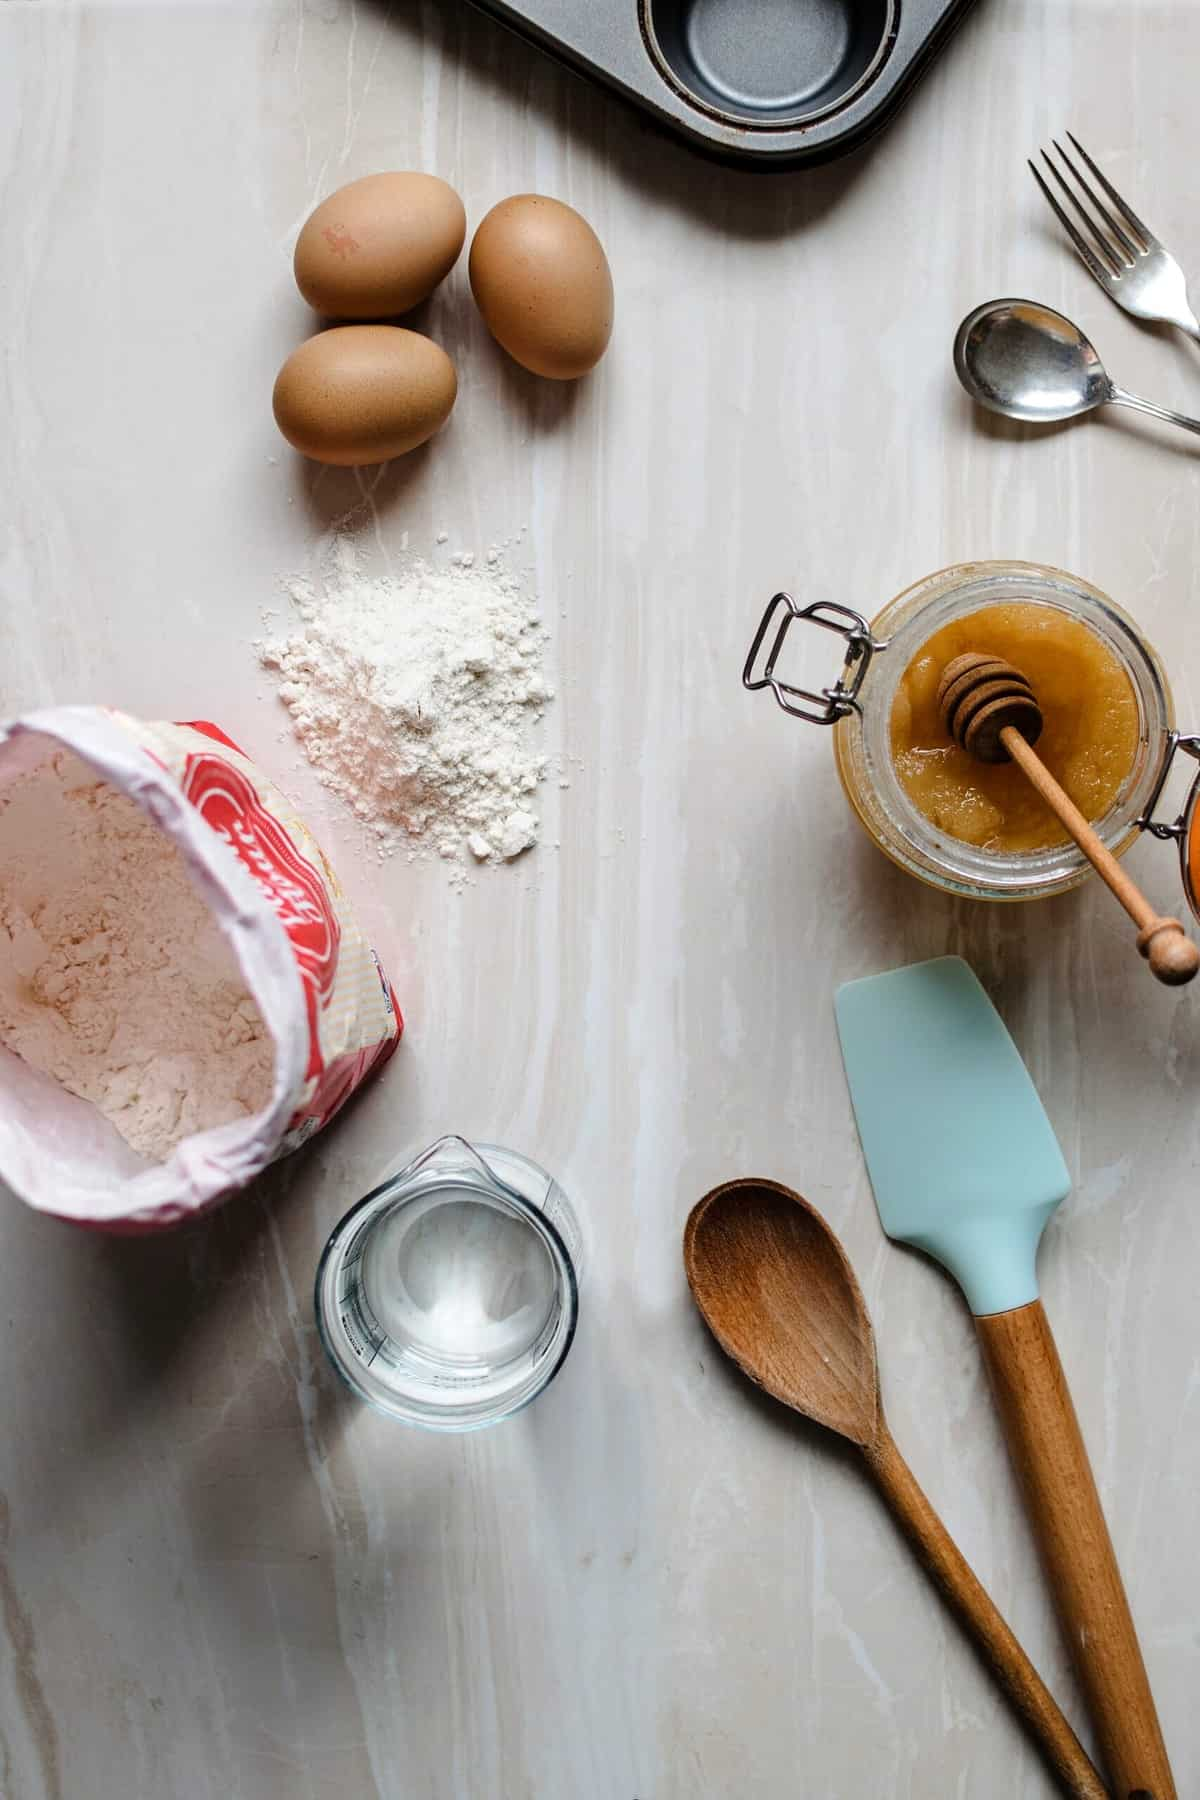 Birds eye view of baking ingredients including eggs, flour, and wooden spoons and spatulas.